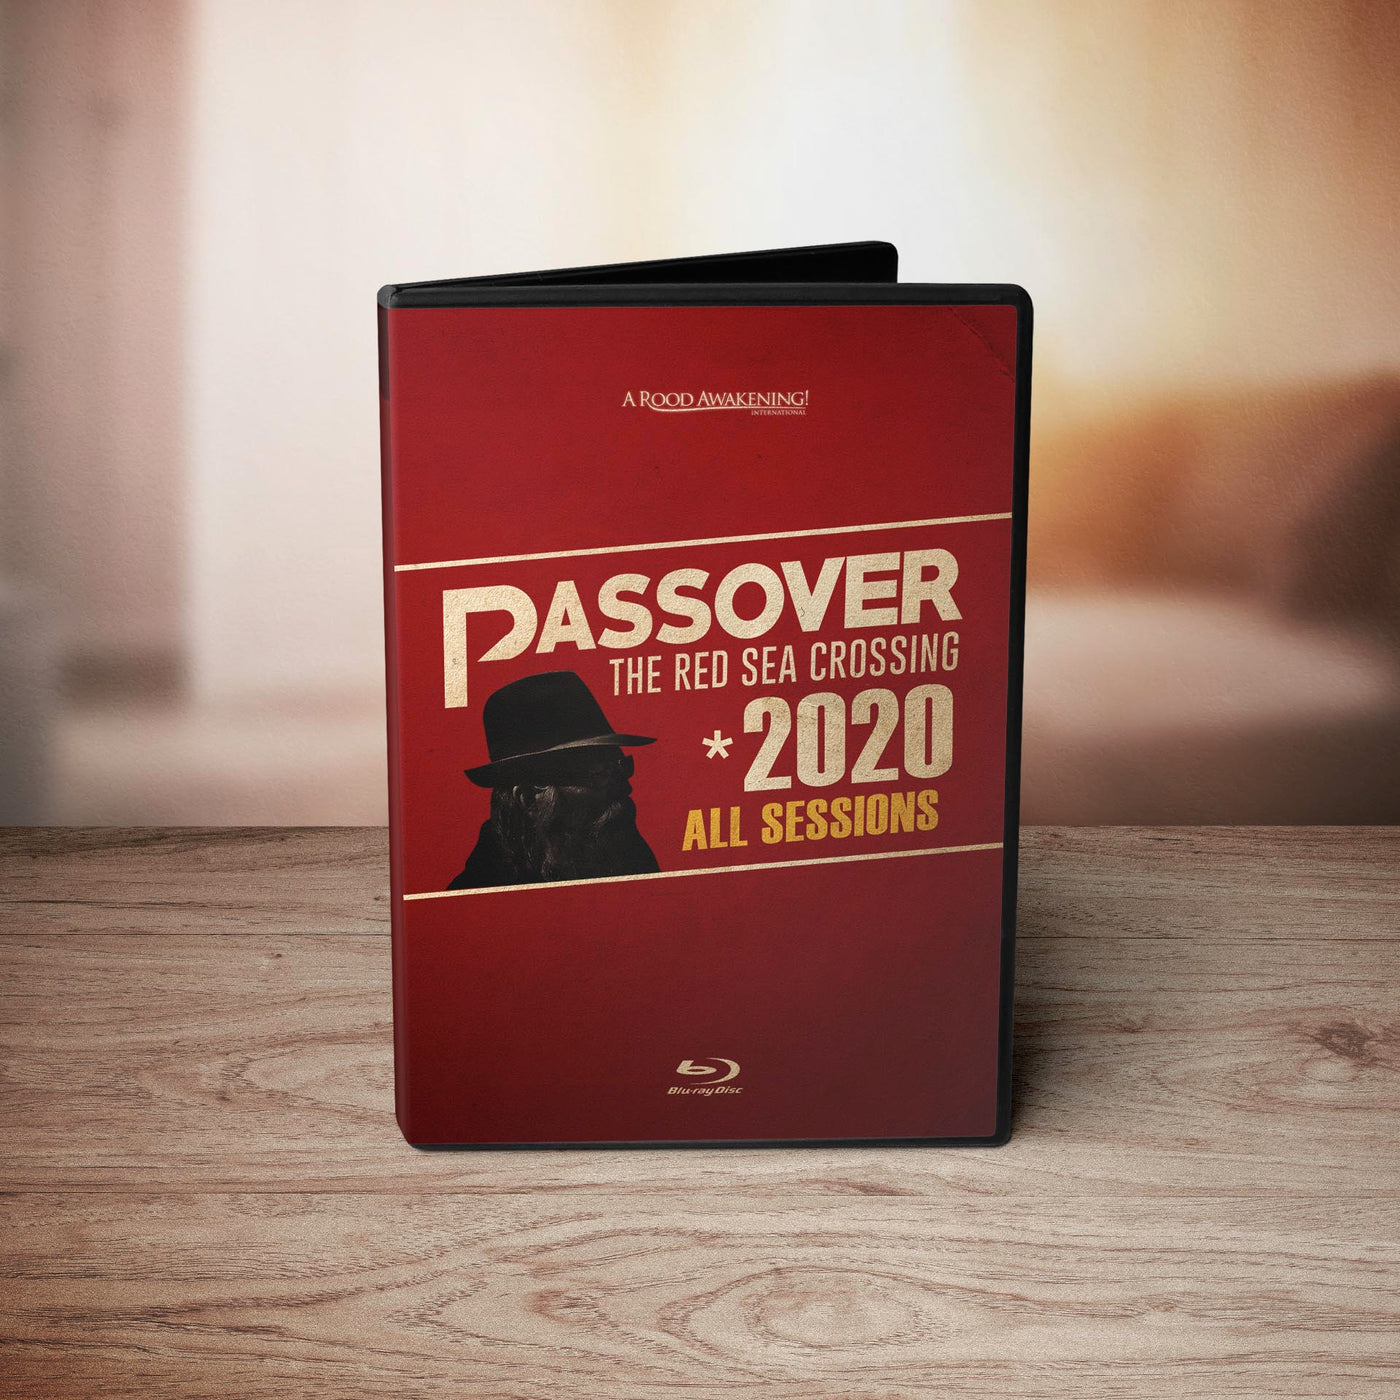 Passover 2020: The Red Sea Crossing